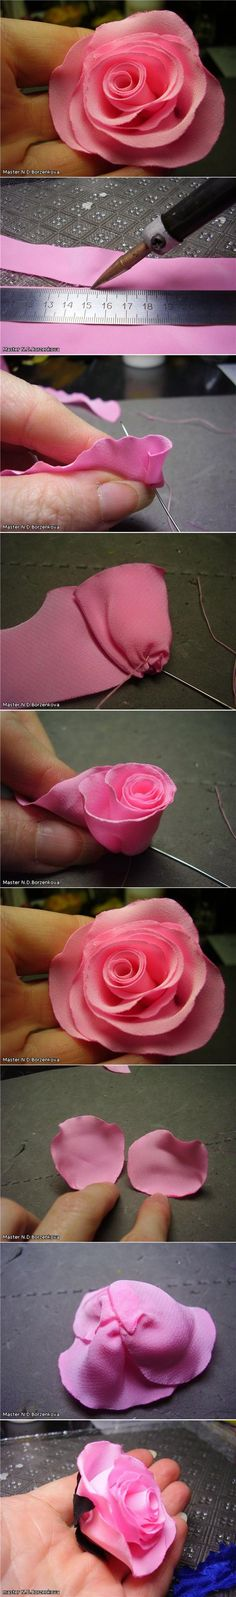 DIY Small Pink Fabric Rose | FabDIY